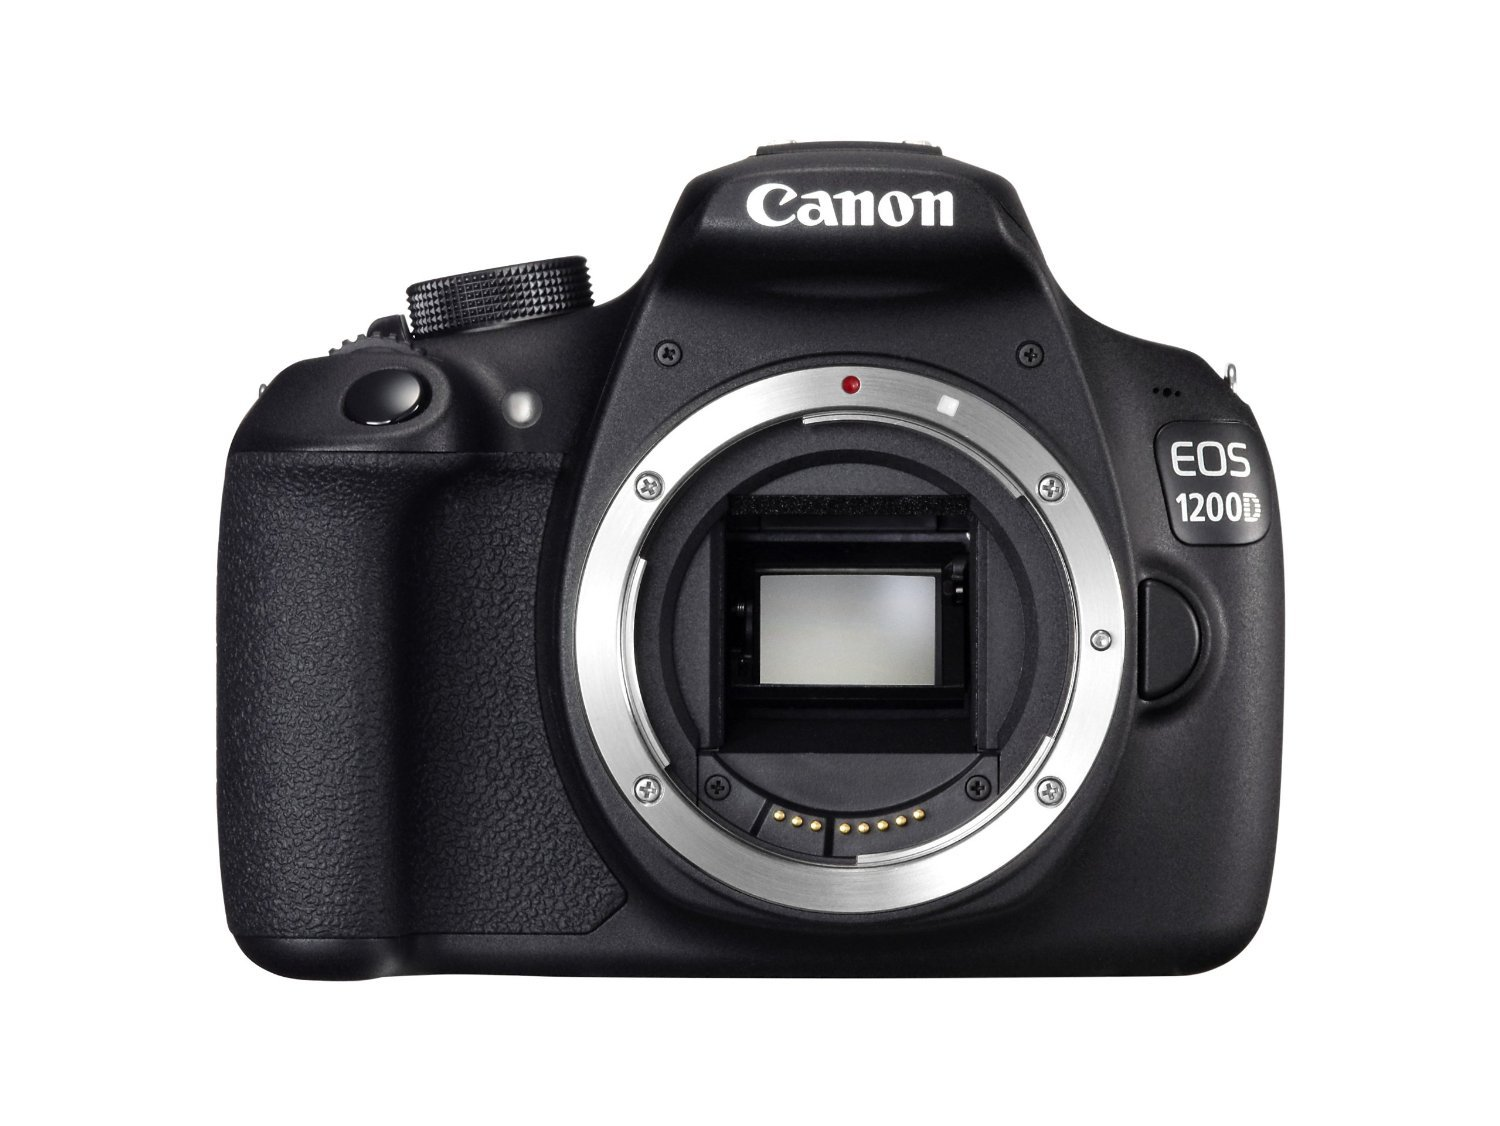 Canon eos 1200d 18mp digital slr camera with body amazon in electronics